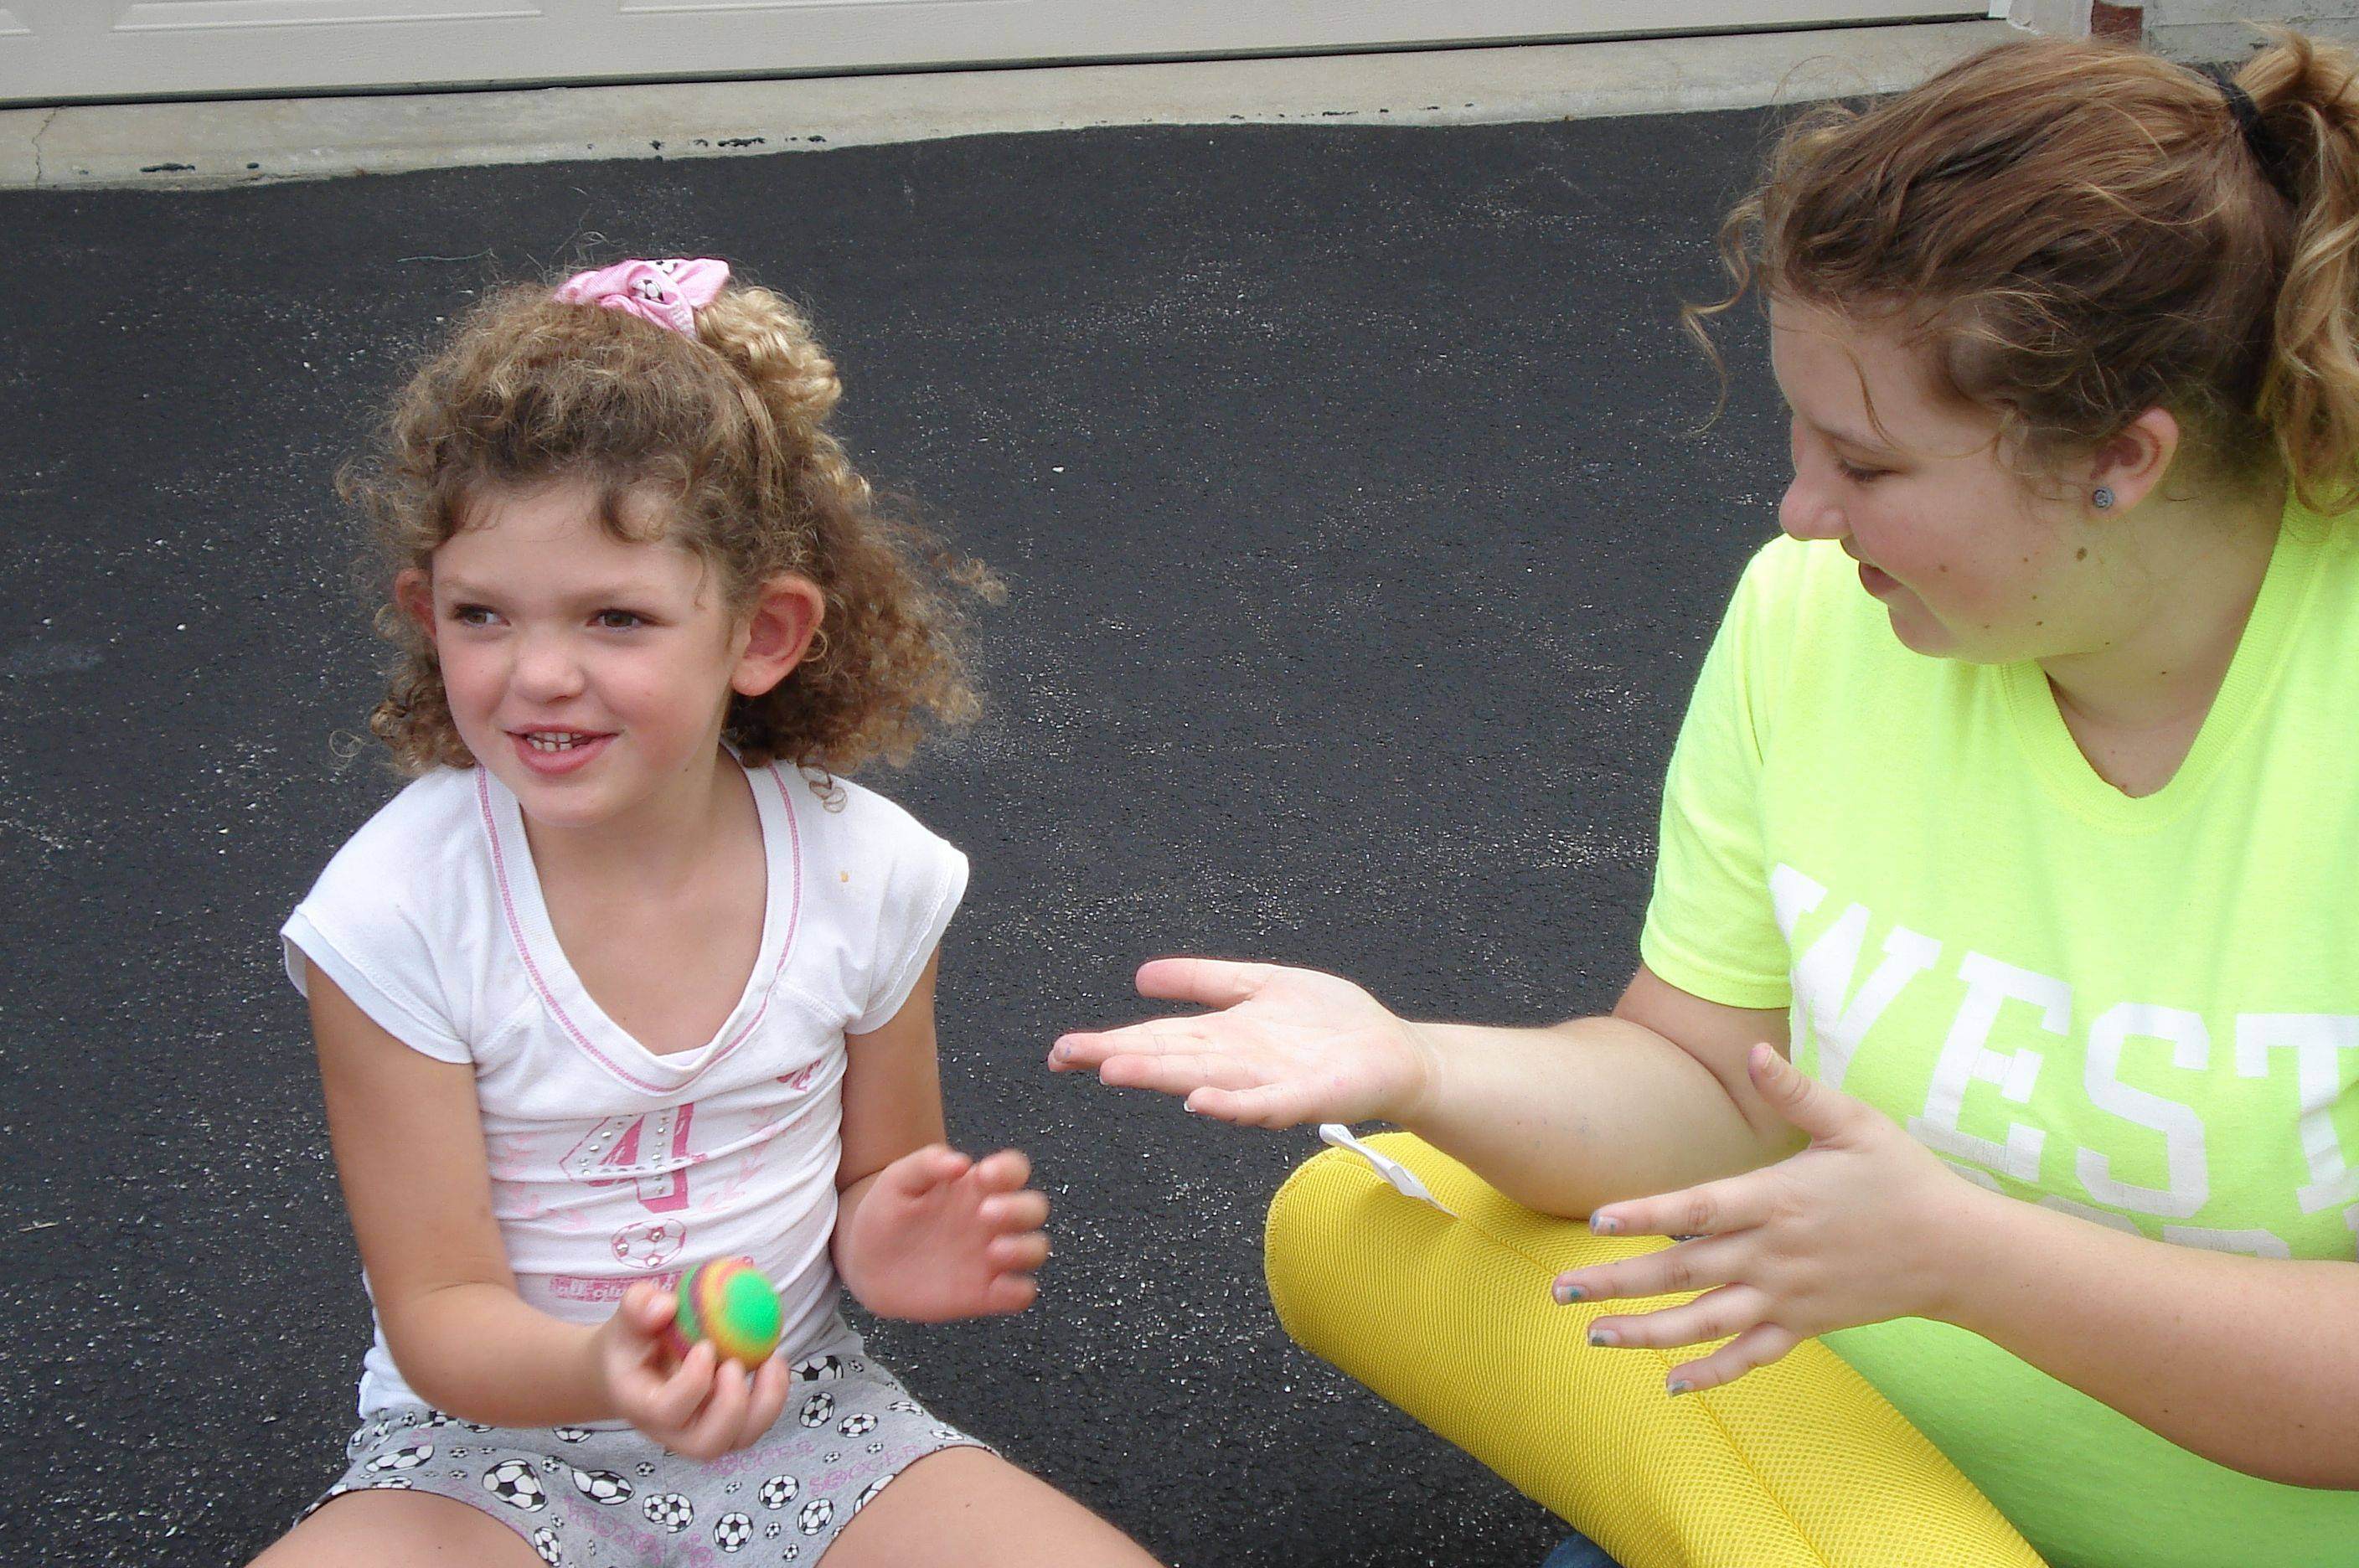 Adult volunteer Allison Greiner encourages Haley Olson to look at her when throwing a ball during a Haley's Playground class at the North Aurora Community Center. Looking at the person you are playing with is a difficult task for children with autism, playground founder Jackie Olson said. (Photo submitted by Haley's Playground Inc.)